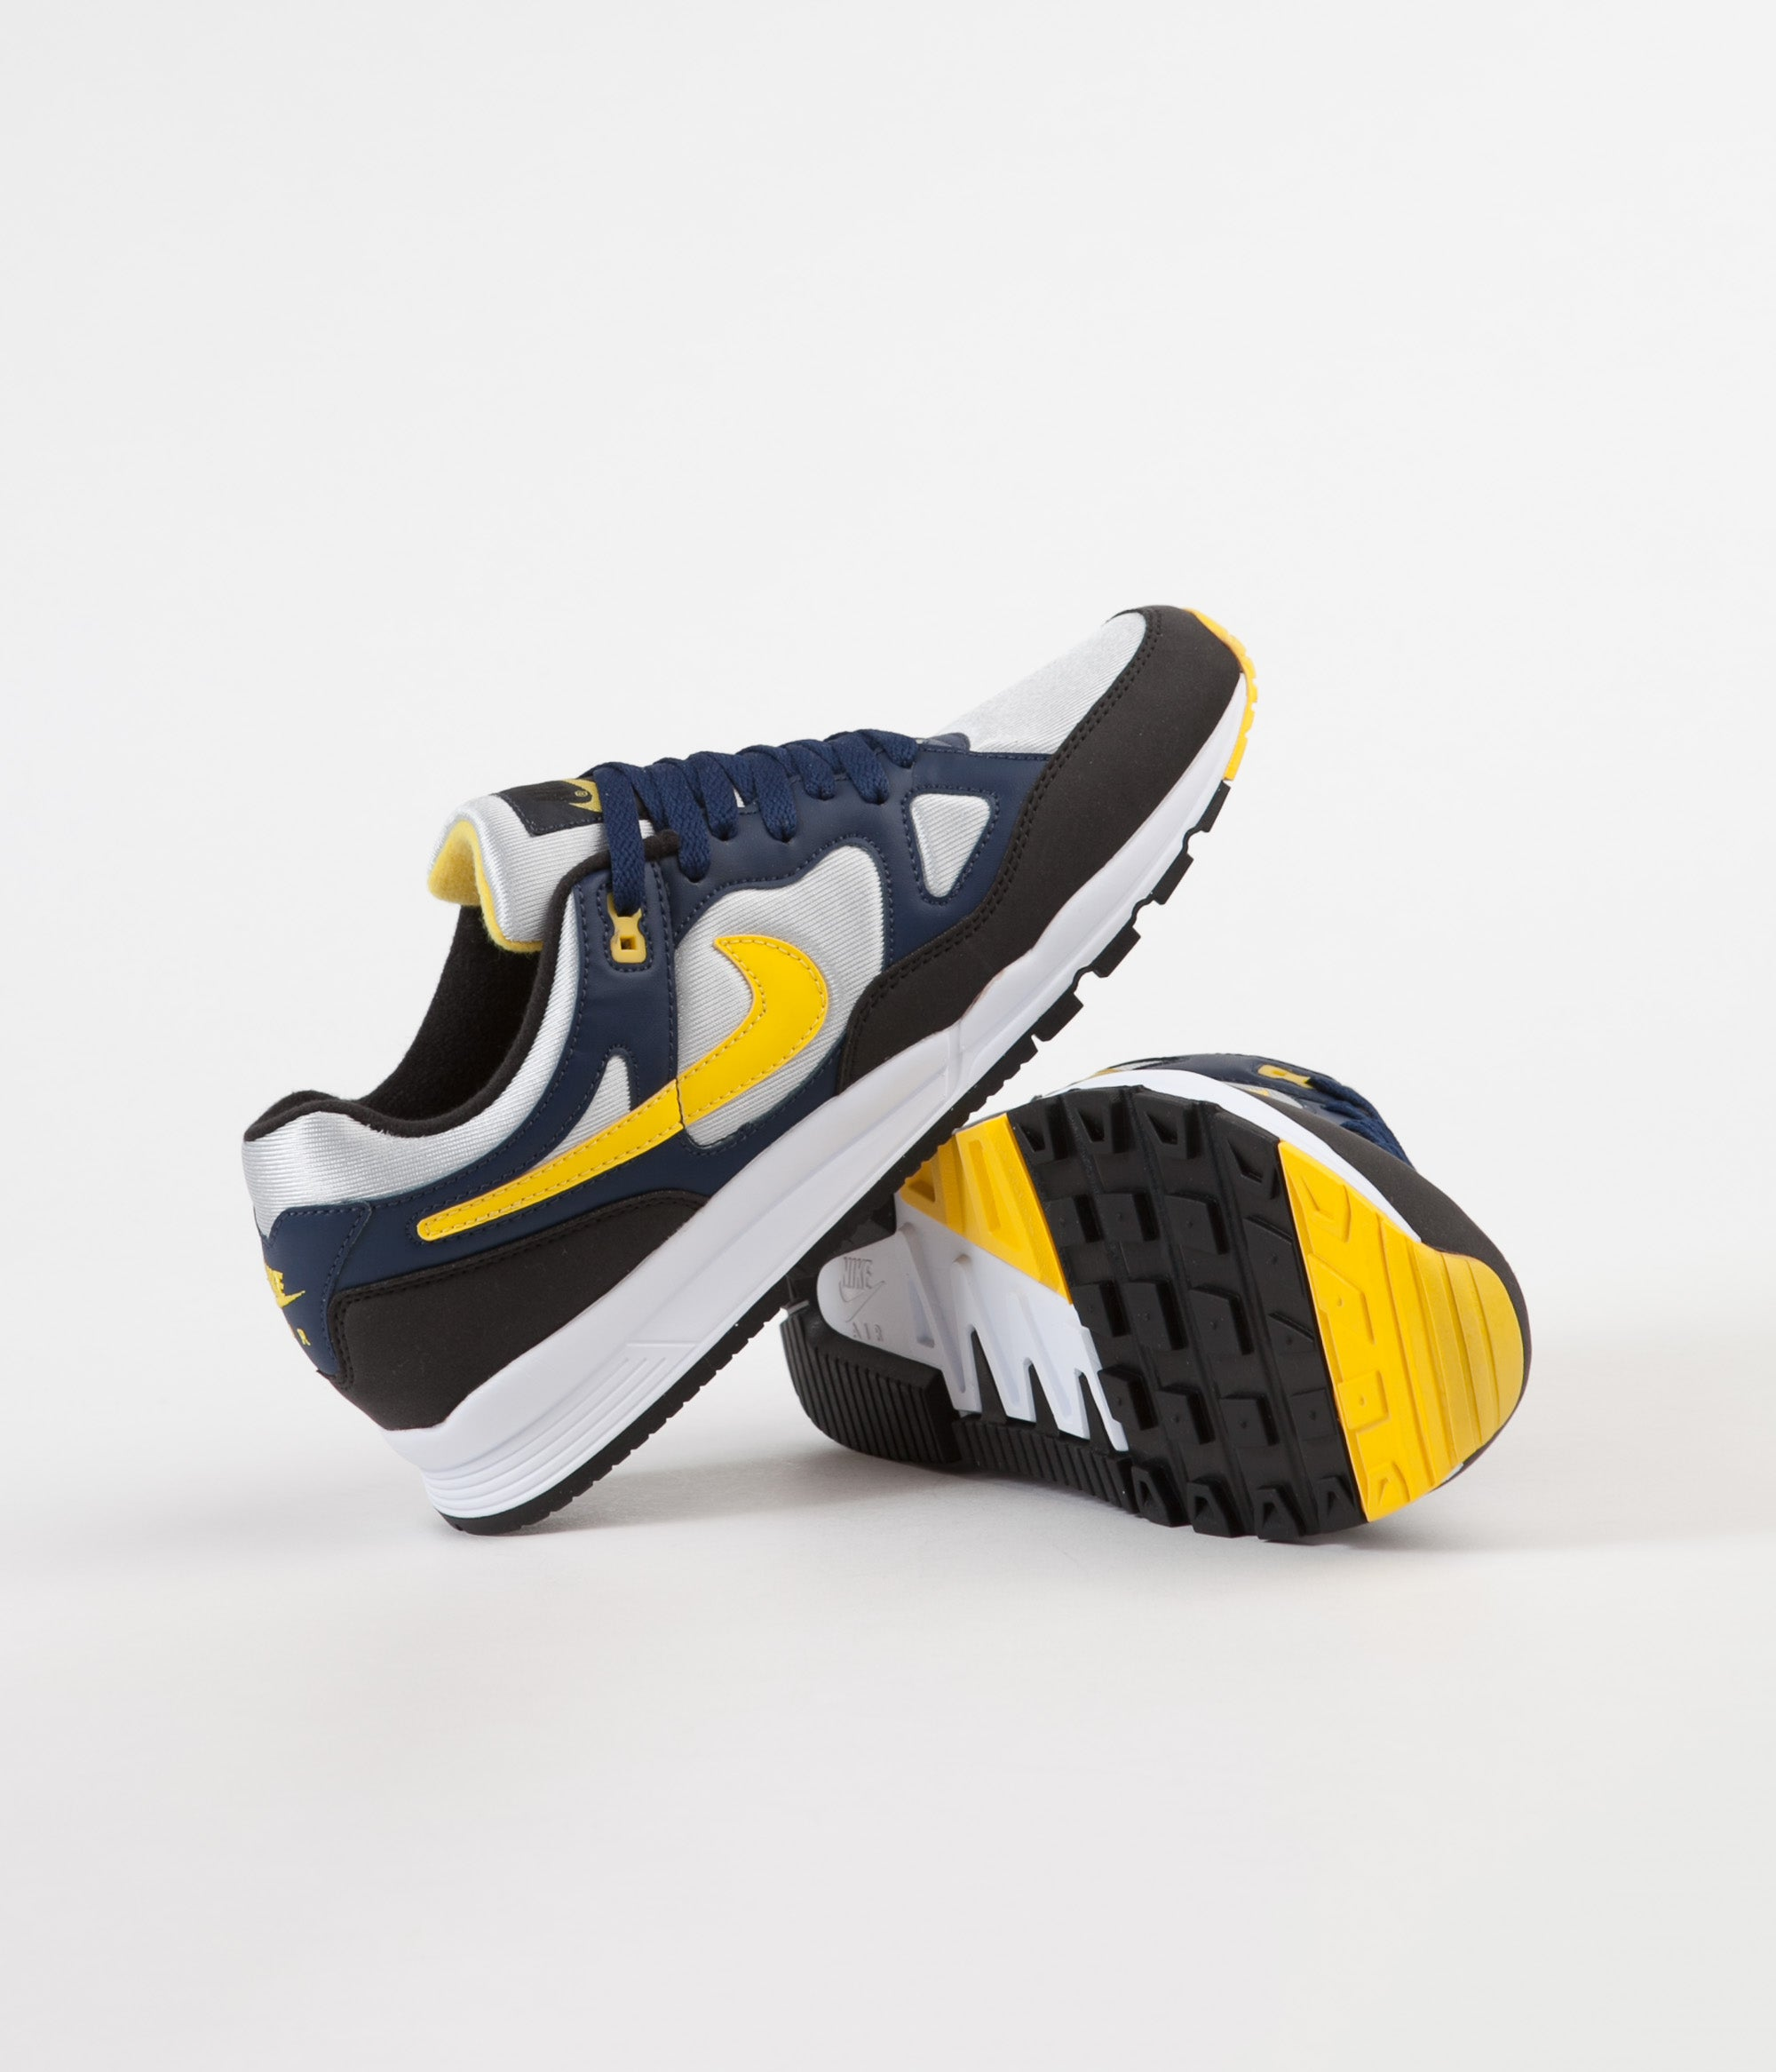 info for d733a 2455d ... Nike Air Span II Shoes - Midnight Navy   Tour Yellow - Black ...